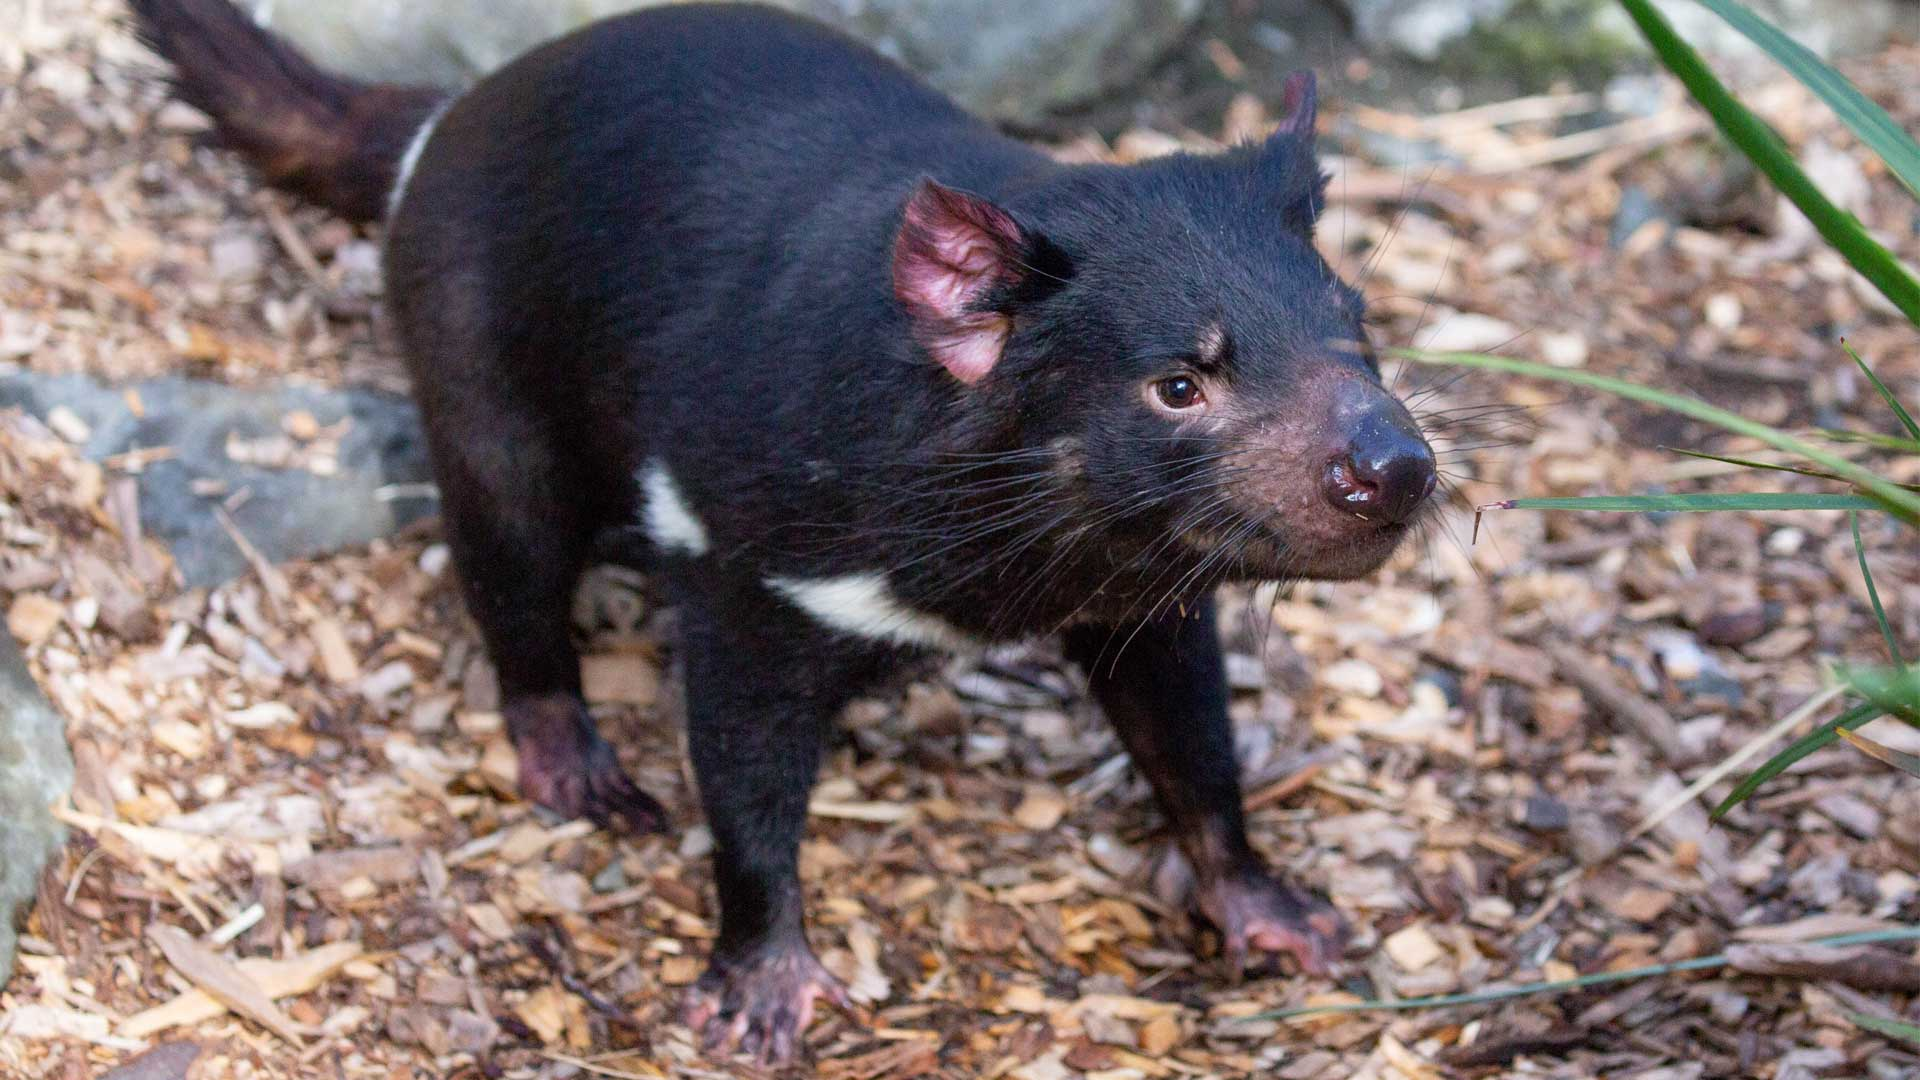 https://rfacdn.nz/zoo/assets/media/new-tassie-devils-gallery-3.jpg